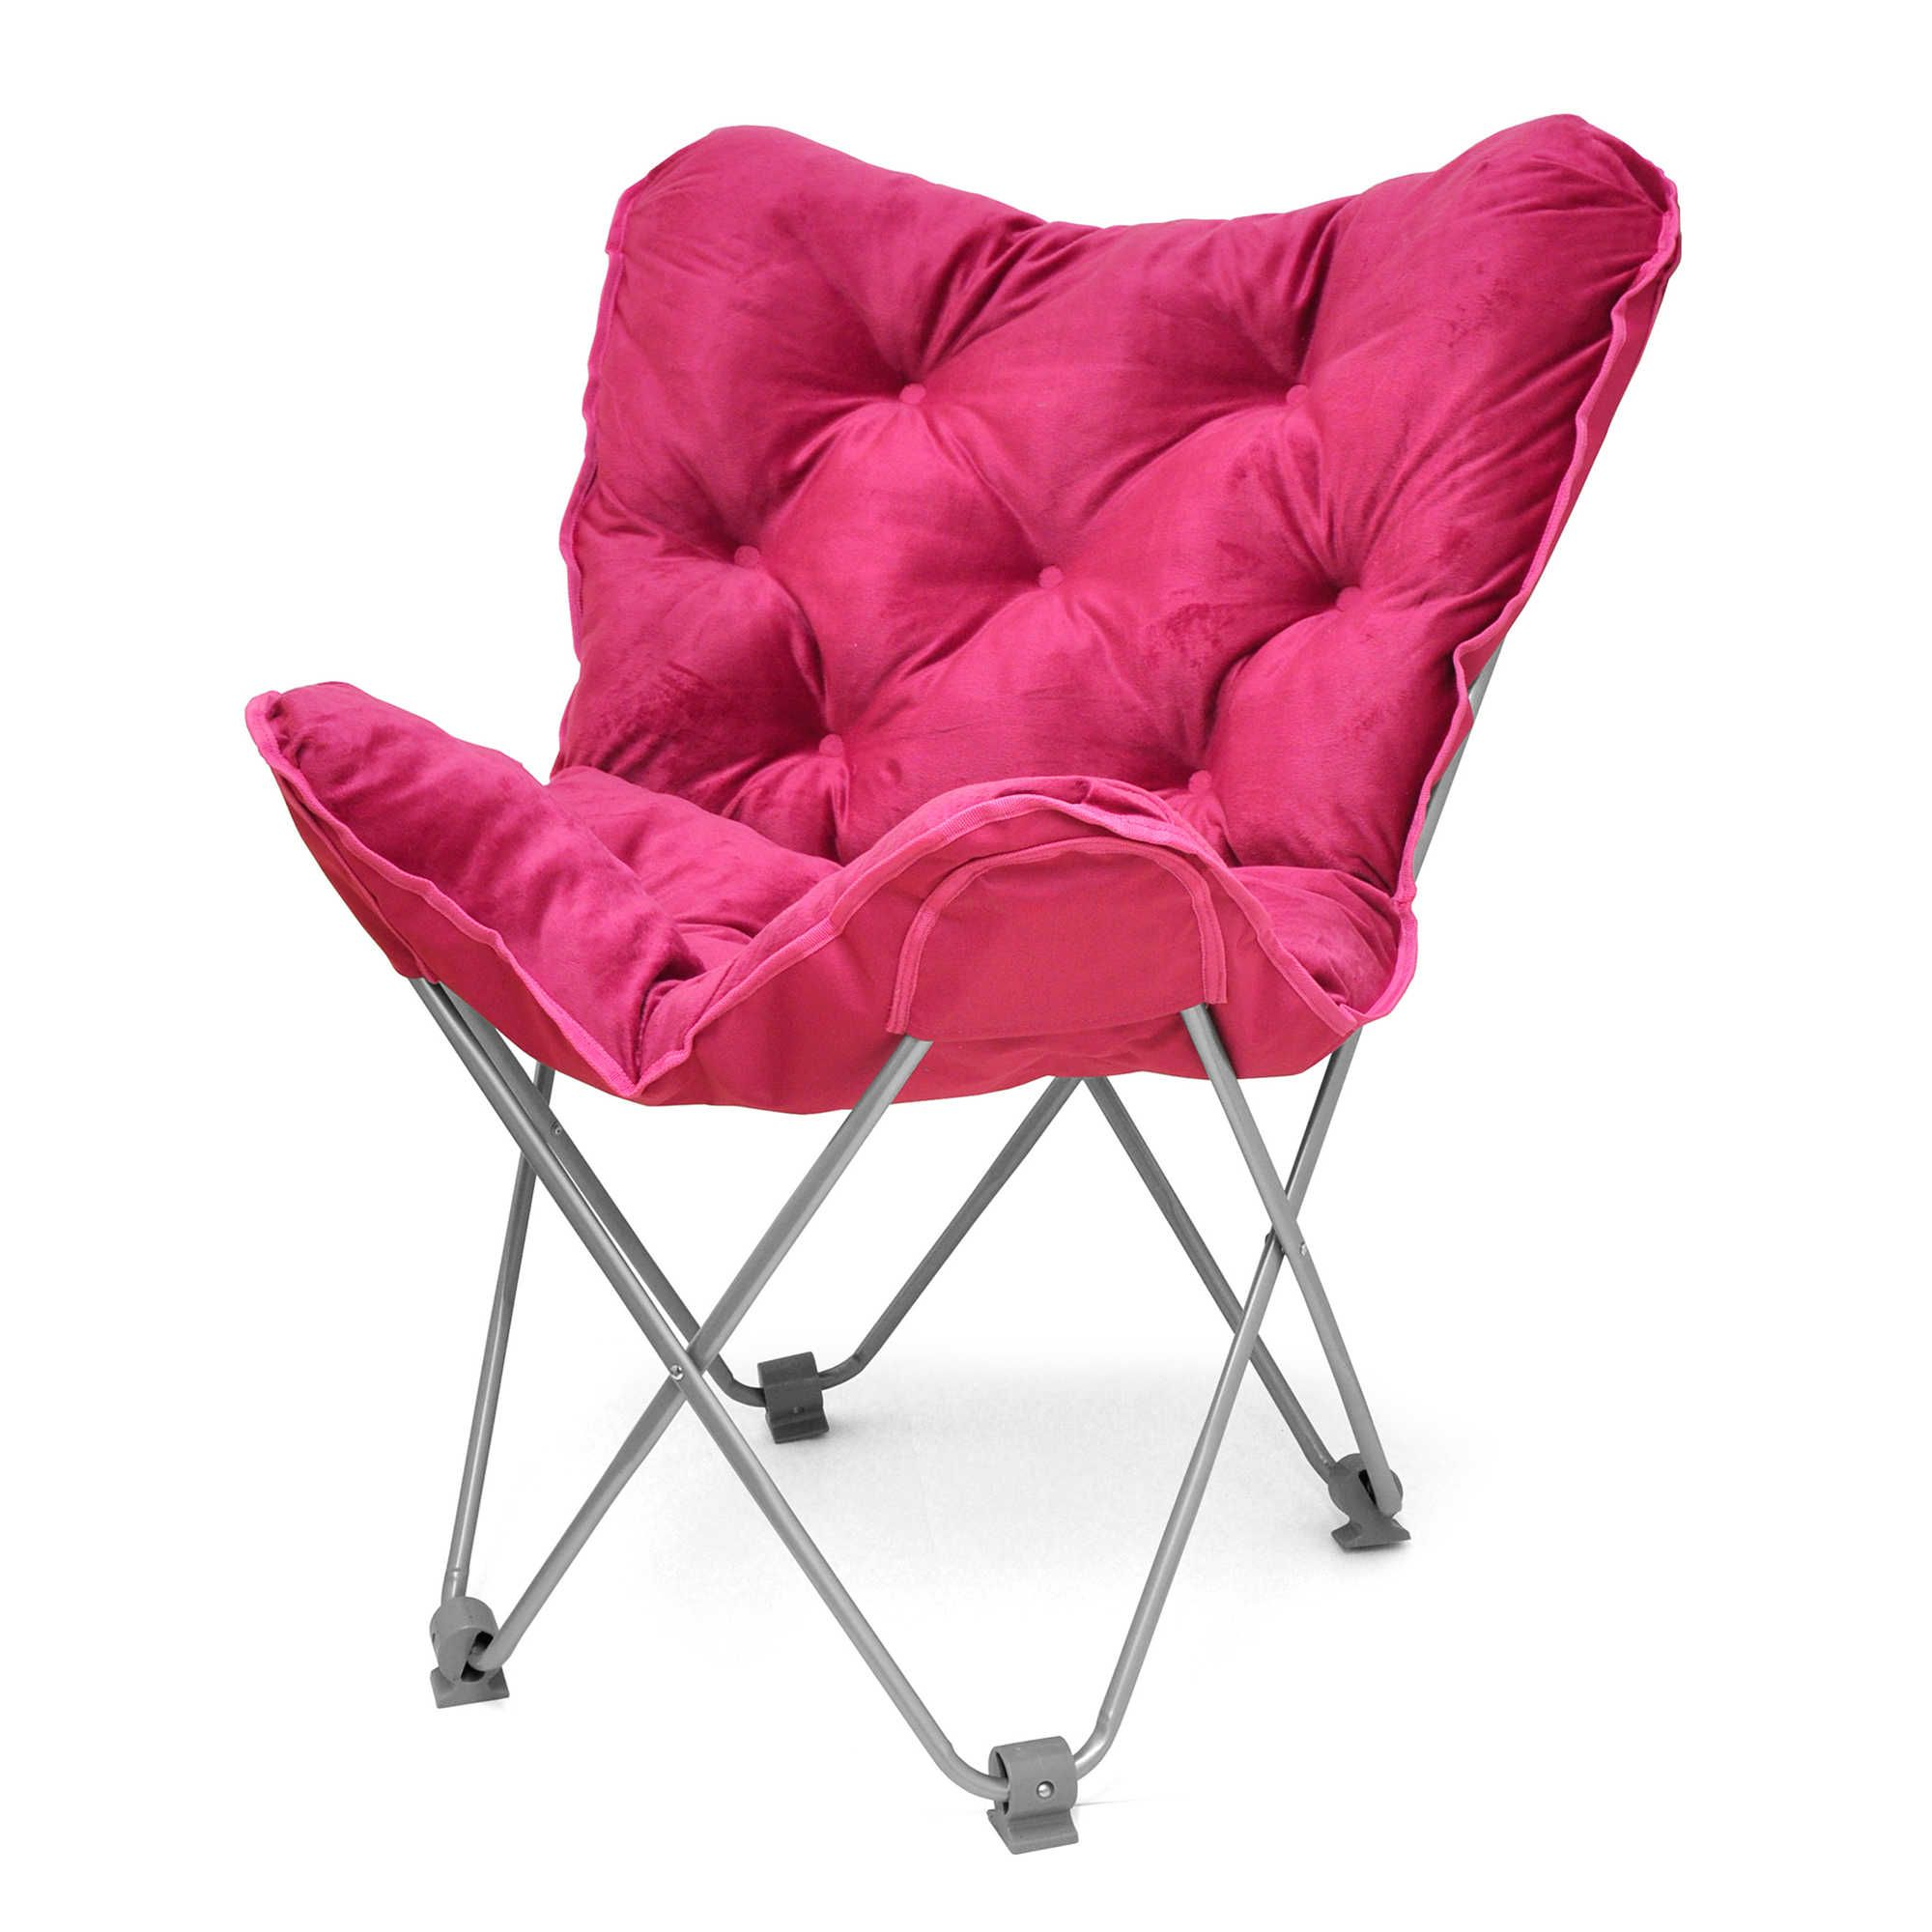 Tufted Folding Butterfly Chair in Fuchsia fold up when you